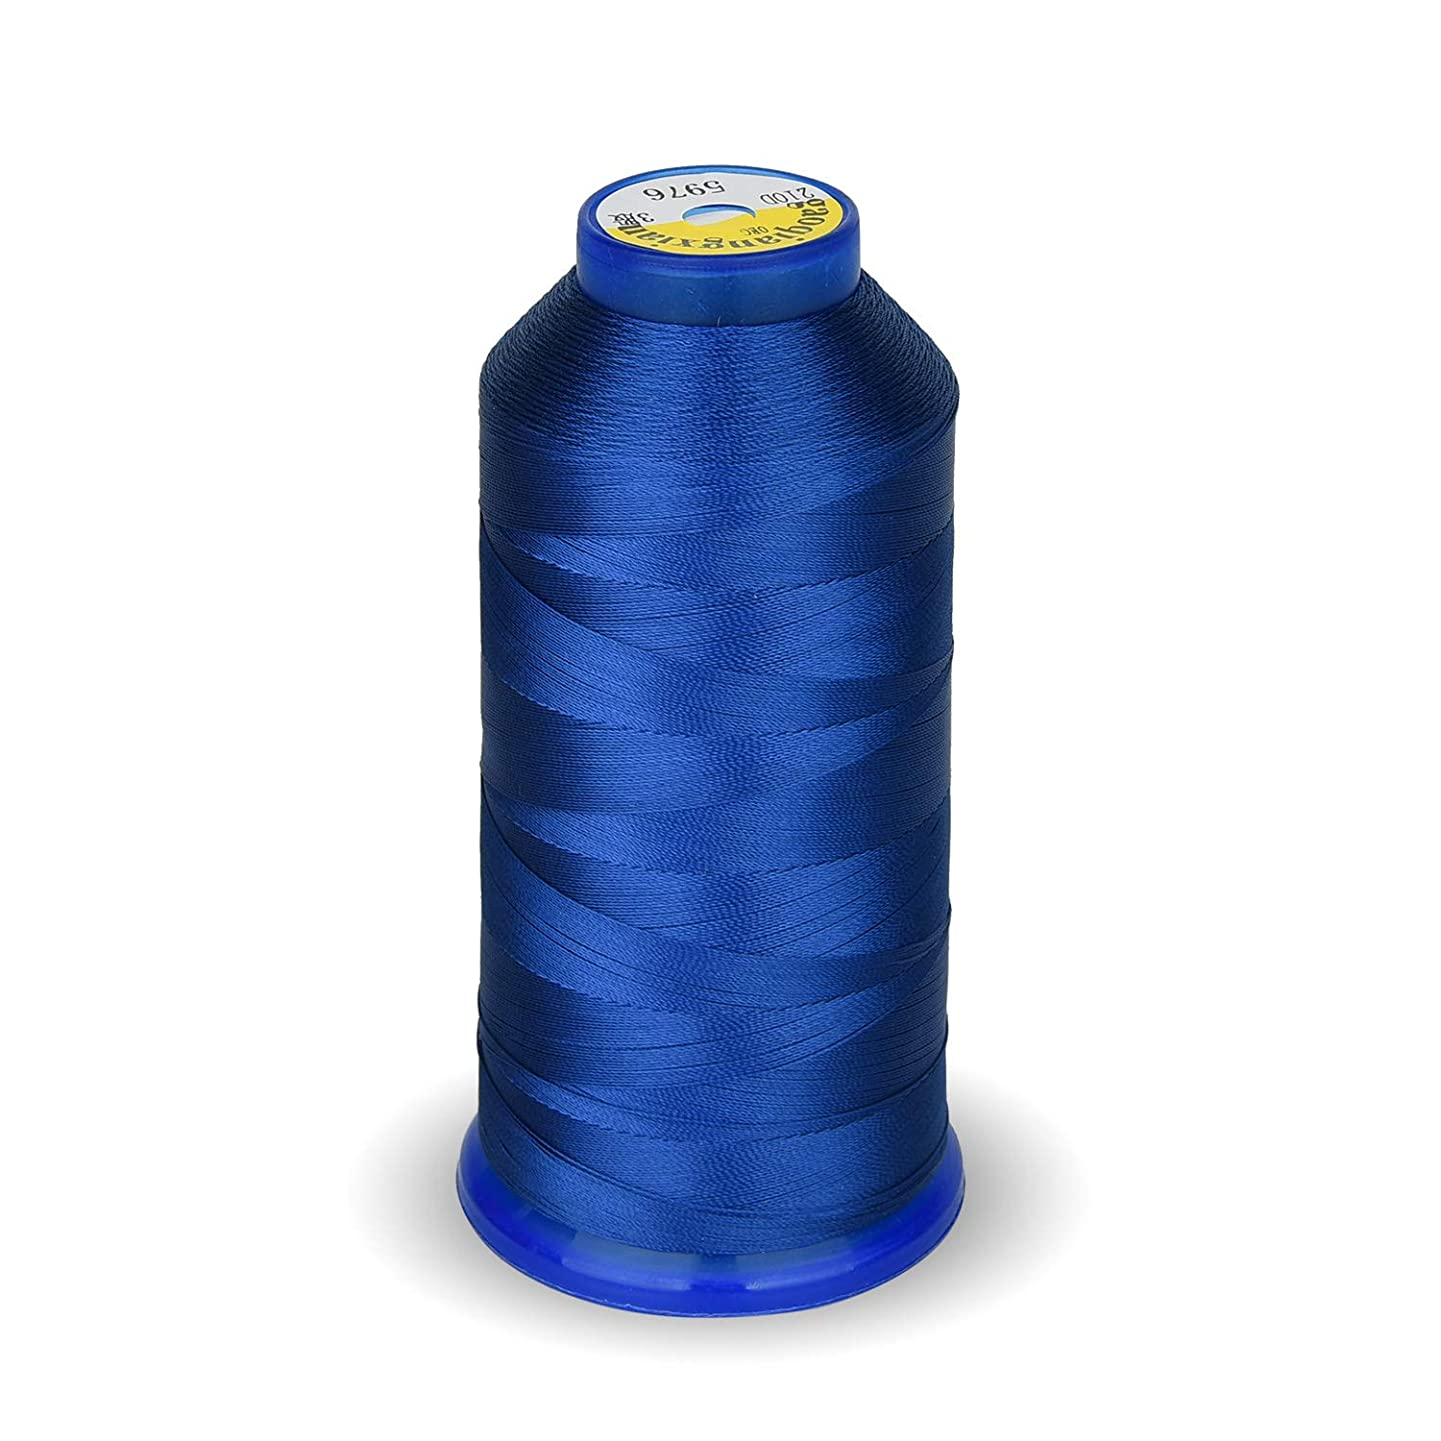 Bonded Nylon Sewing Thread 1800 Yard Size T70#69 210D/3 for Weaves, Upholstery, Jeans and Weaving Hair, Drapery, Beading, Purses, Leather (Royal Blue)